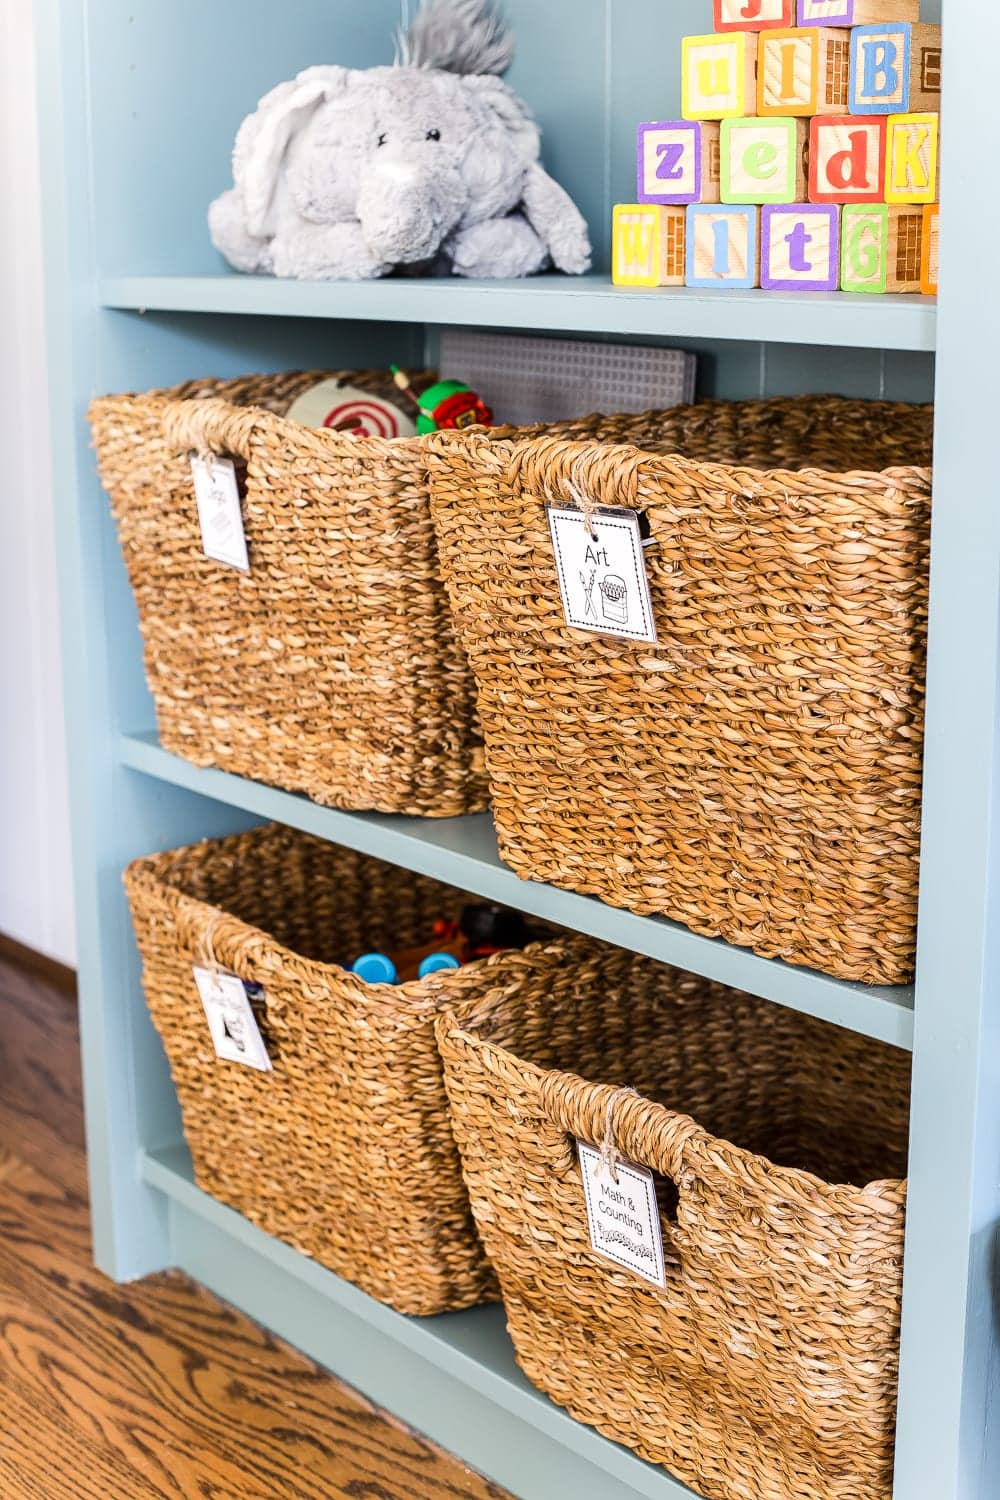 kid-friendly home toy storage baskets with labels